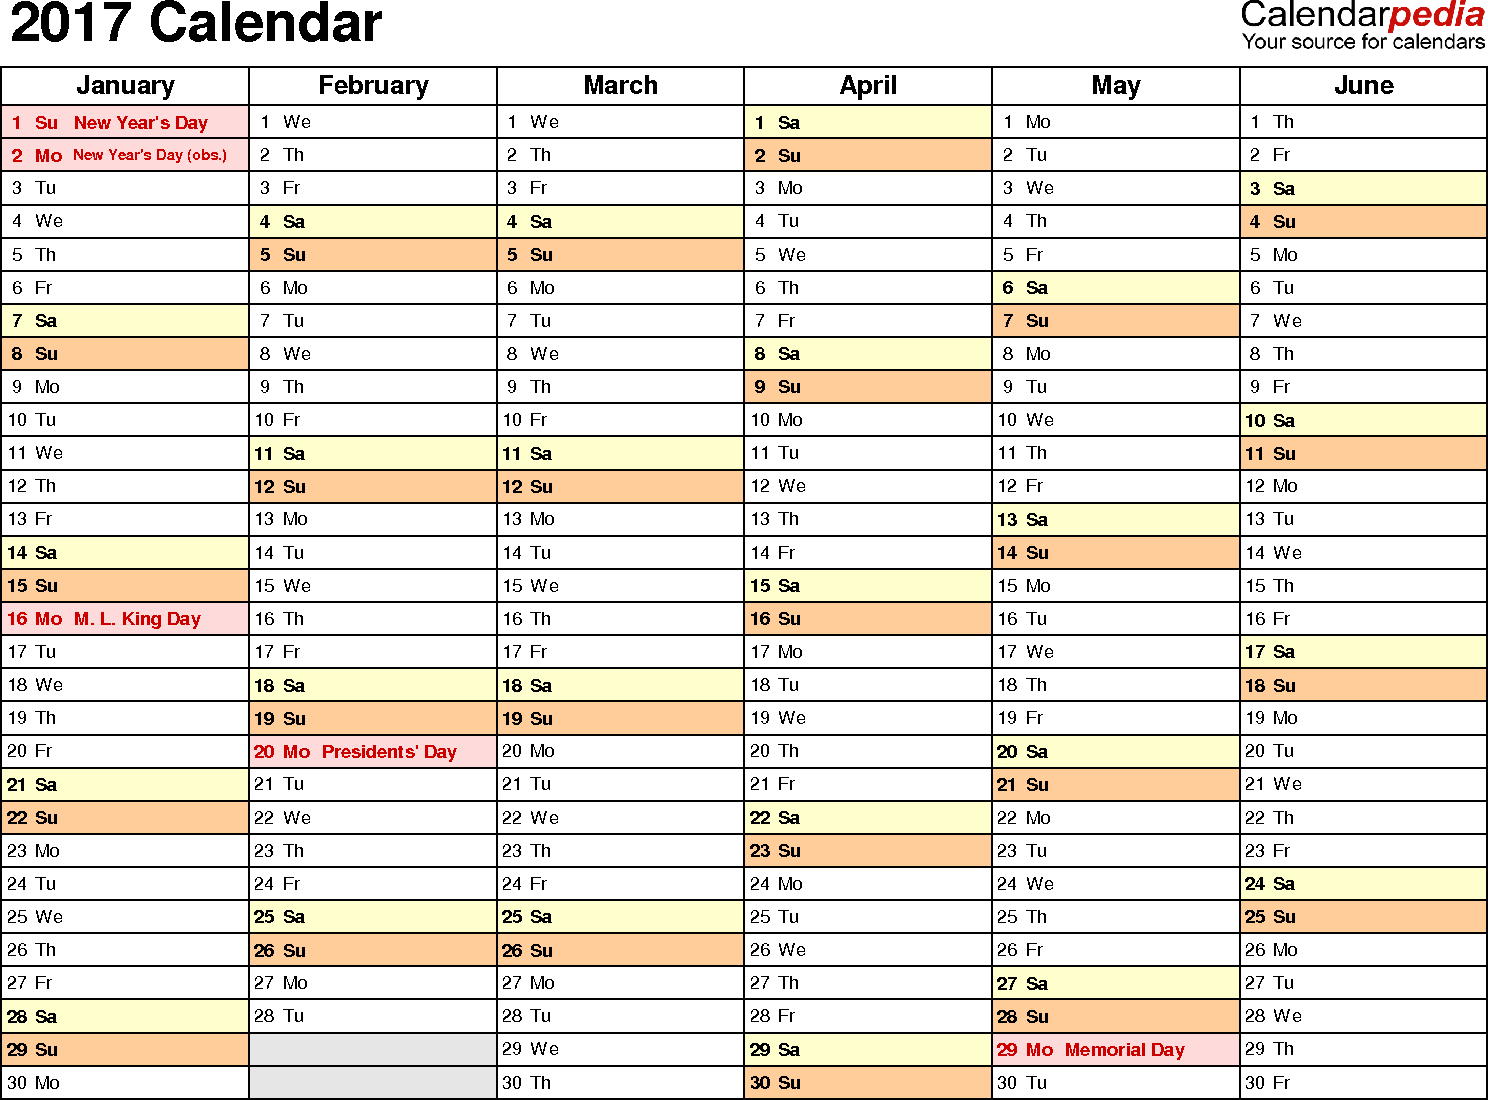 Ediblewildsus  Marvellous  Calendar  Download  Free Printable Excel Templates Xls With Engaging Template   Calendar For Excel Months Horizontally  Pages Landscape Orientation With Breathtaking Update Sql Table From Excel Spreadsheet Also Outlook Import Contacts Excel In Addition Excel Arcsin And Excel Data Loader As Well As Resource Loading Excel Additionally Excel Pivot Calculated Field From Calendarpediacom With Ediblewildsus  Engaging  Calendar  Download  Free Printable Excel Templates Xls With Breathtaking Template   Calendar For Excel Months Horizontally  Pages Landscape Orientation And Marvellous Update Sql Table From Excel Spreadsheet Also Outlook Import Contacts Excel In Addition Excel Arcsin From Calendarpediacom